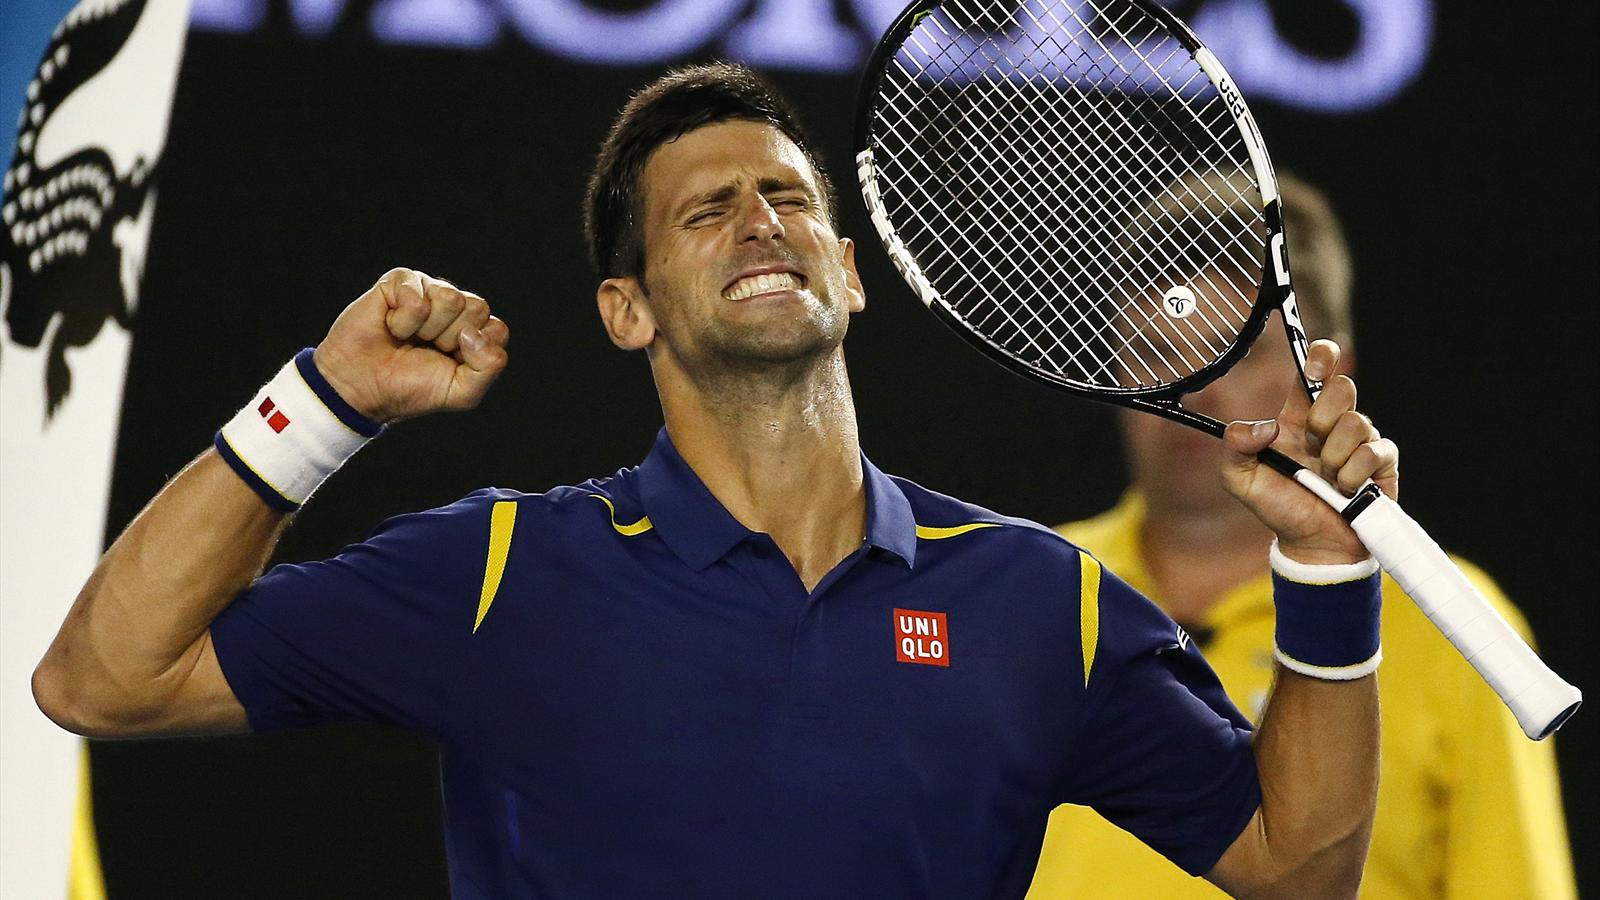 Serbia's Novak Djokovic celebrates after winning his semi-final match against Switzerland's Roger Federer at the Australian Open